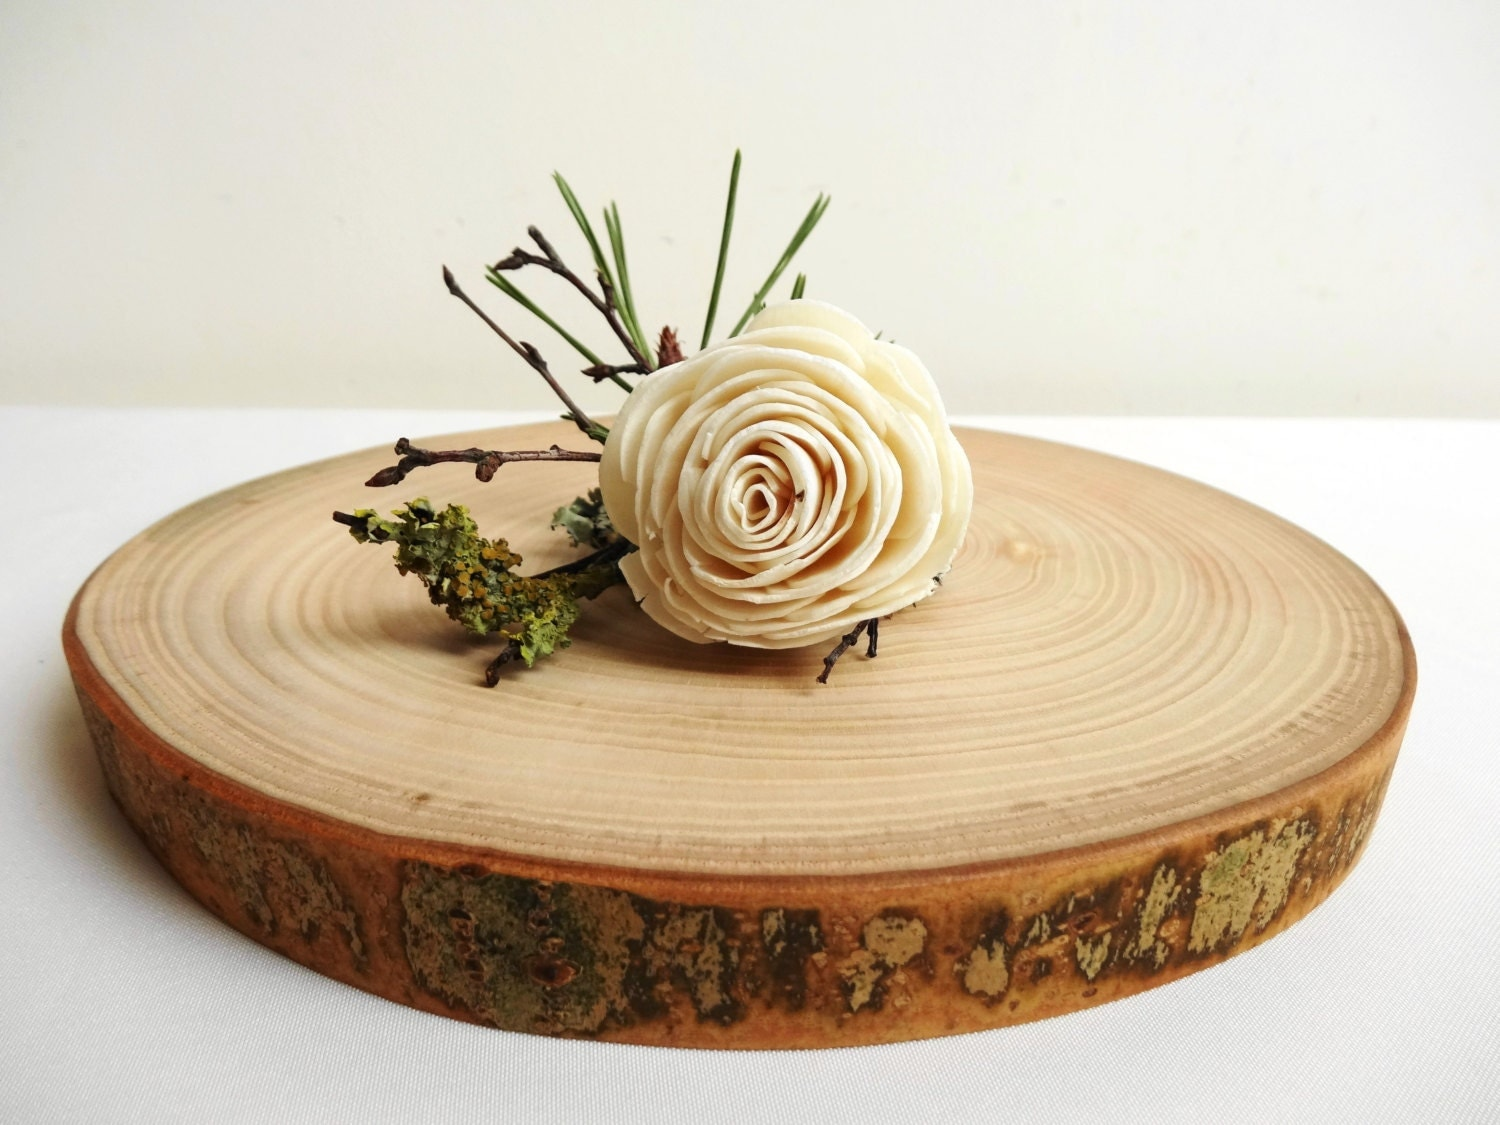 Tree trunk slices inch x inch willow wood slice with tree for Wood trunk slices